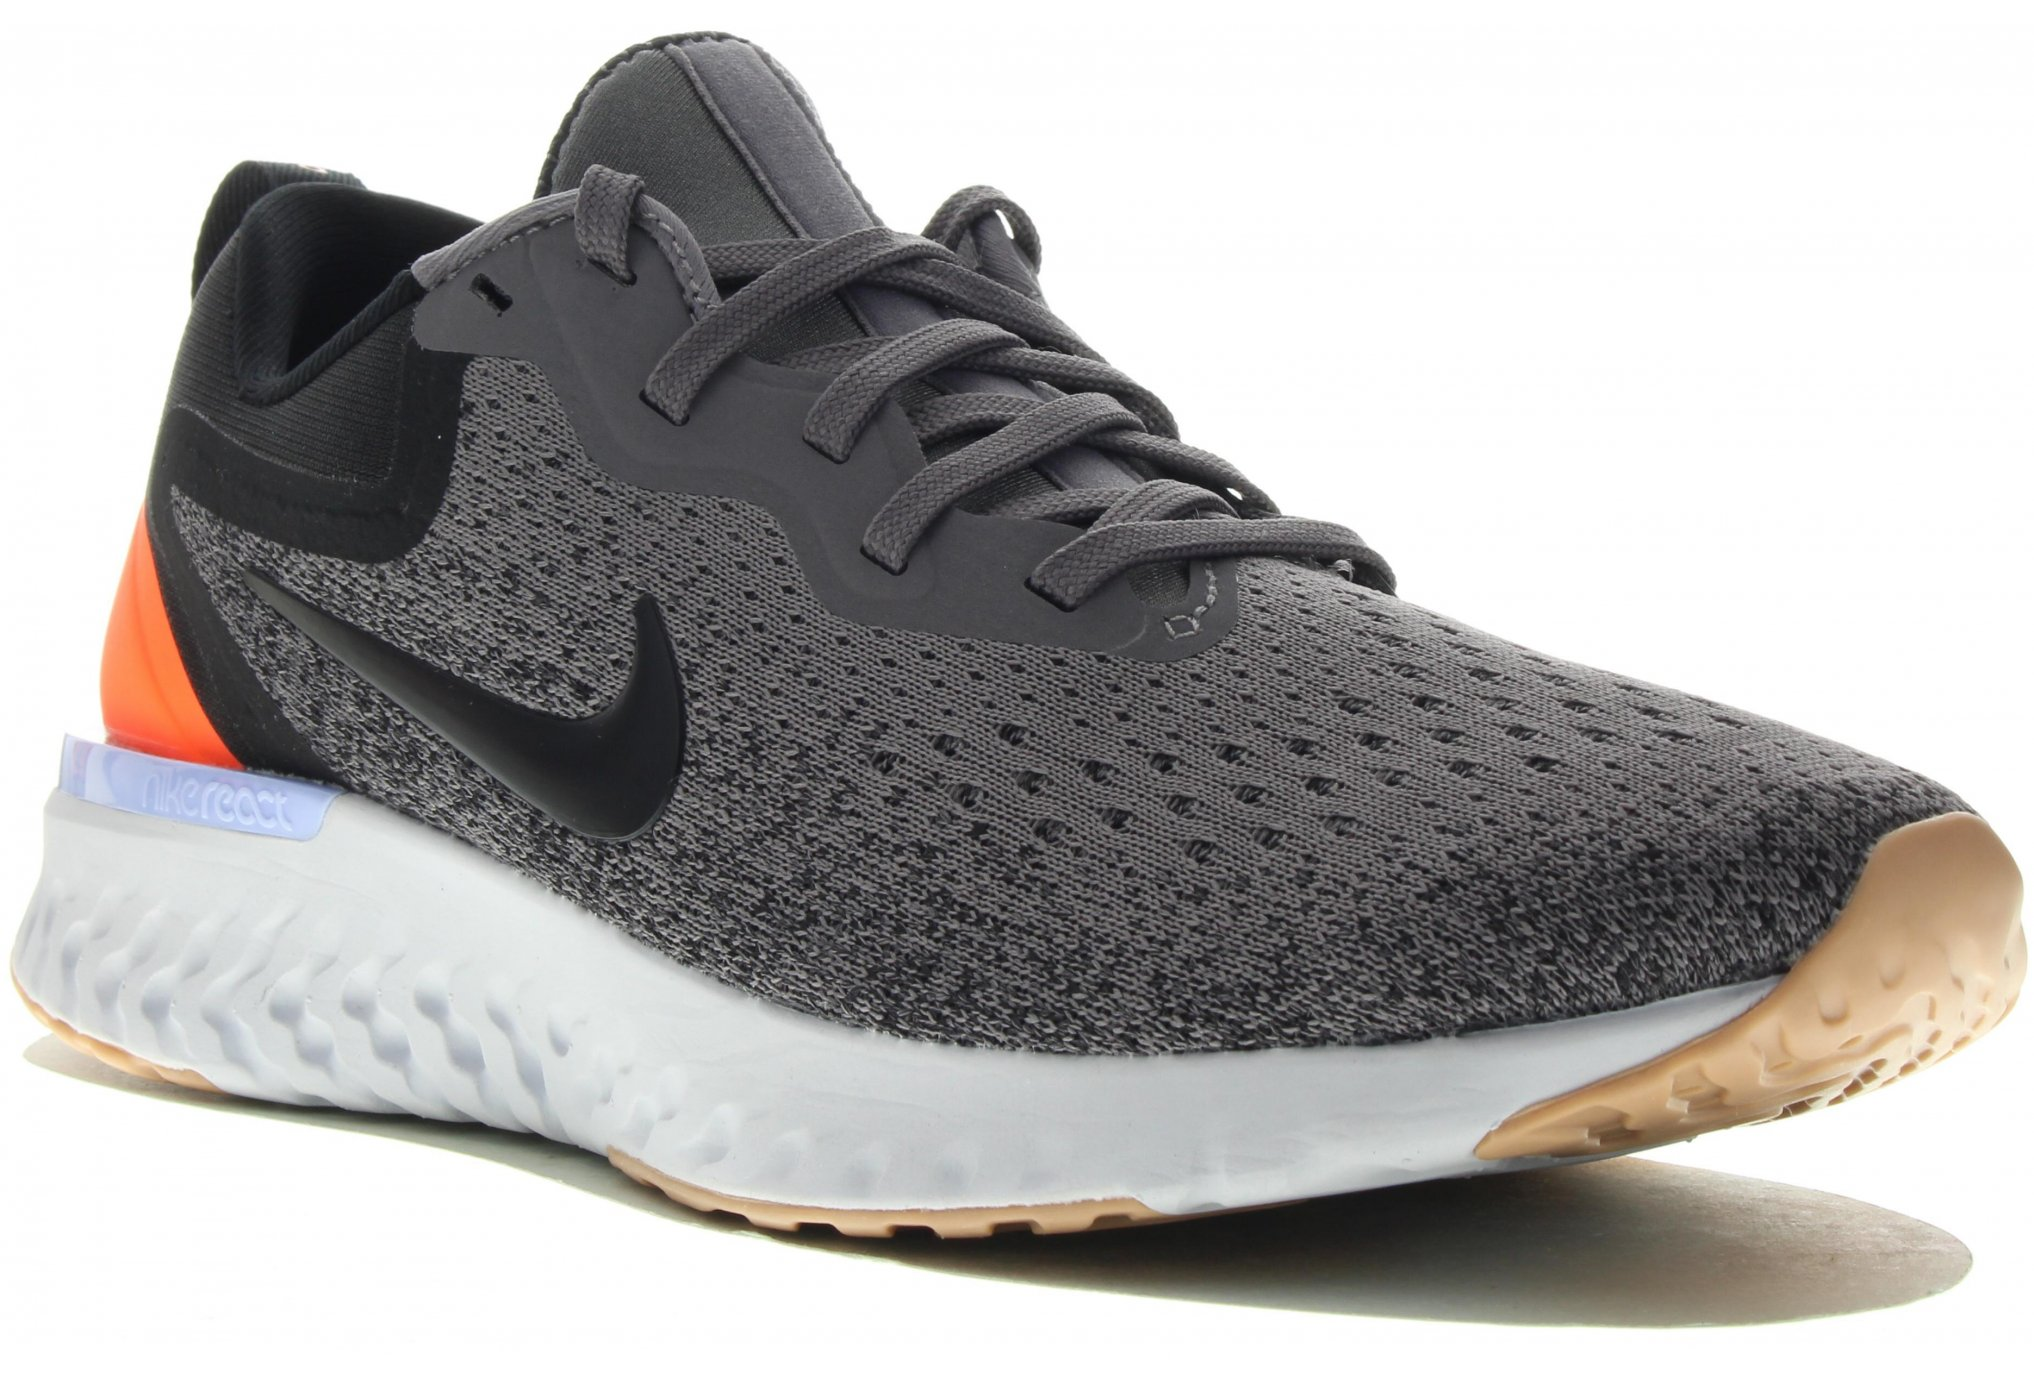 Nike Odyssey React déstockage running